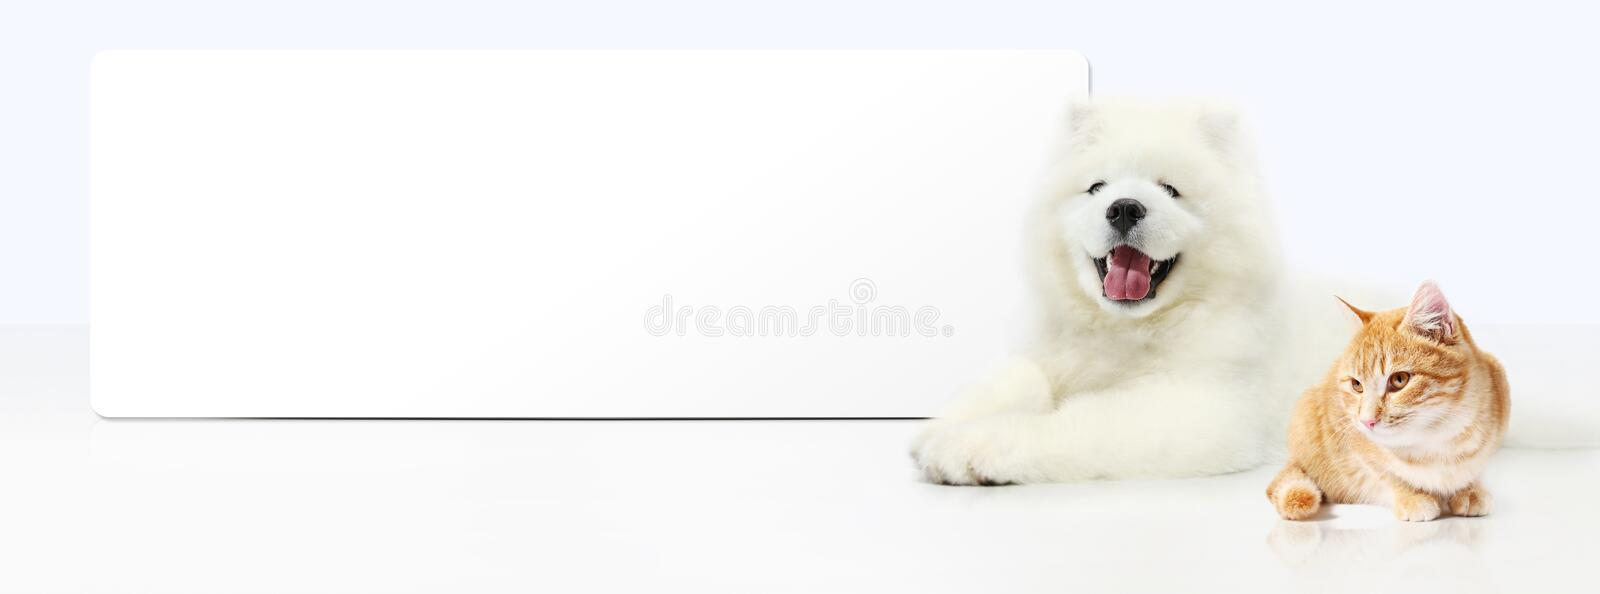 Dog and Cat with blank banner isolated on white background stock photos